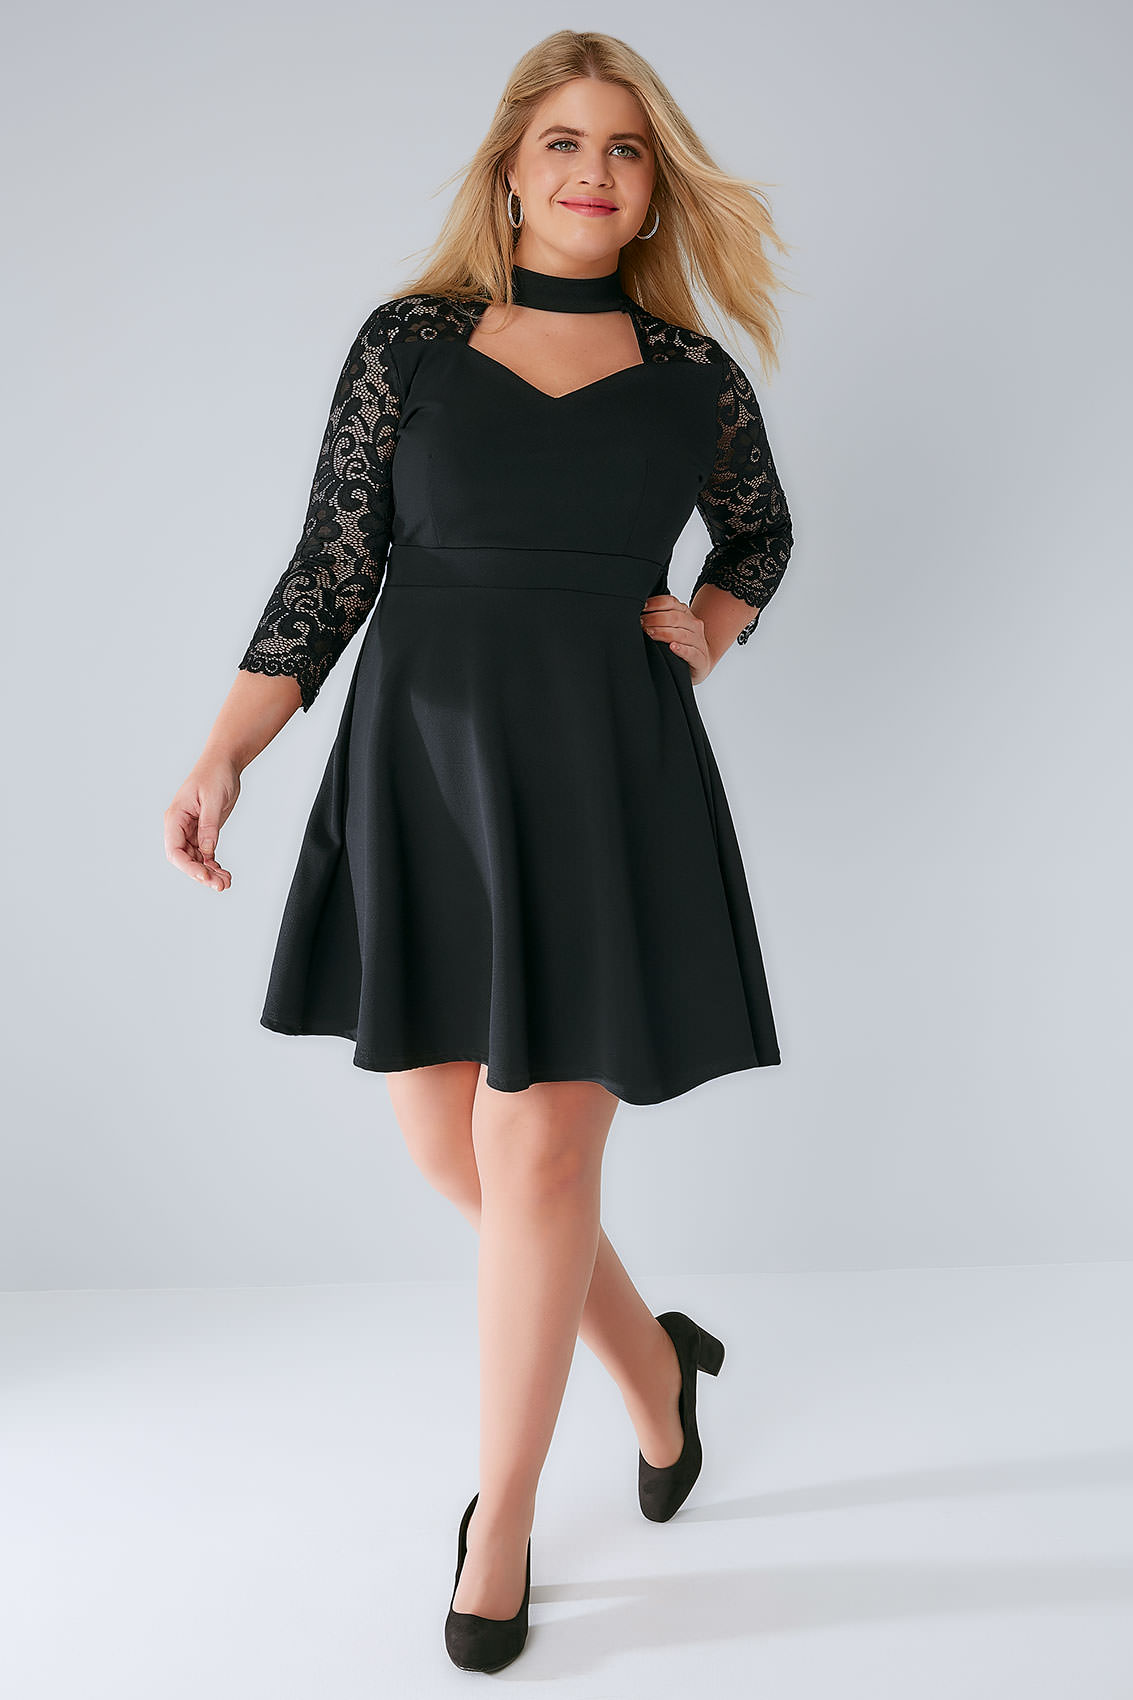 sienna couture black skater dress with lace sleeves & choker neck